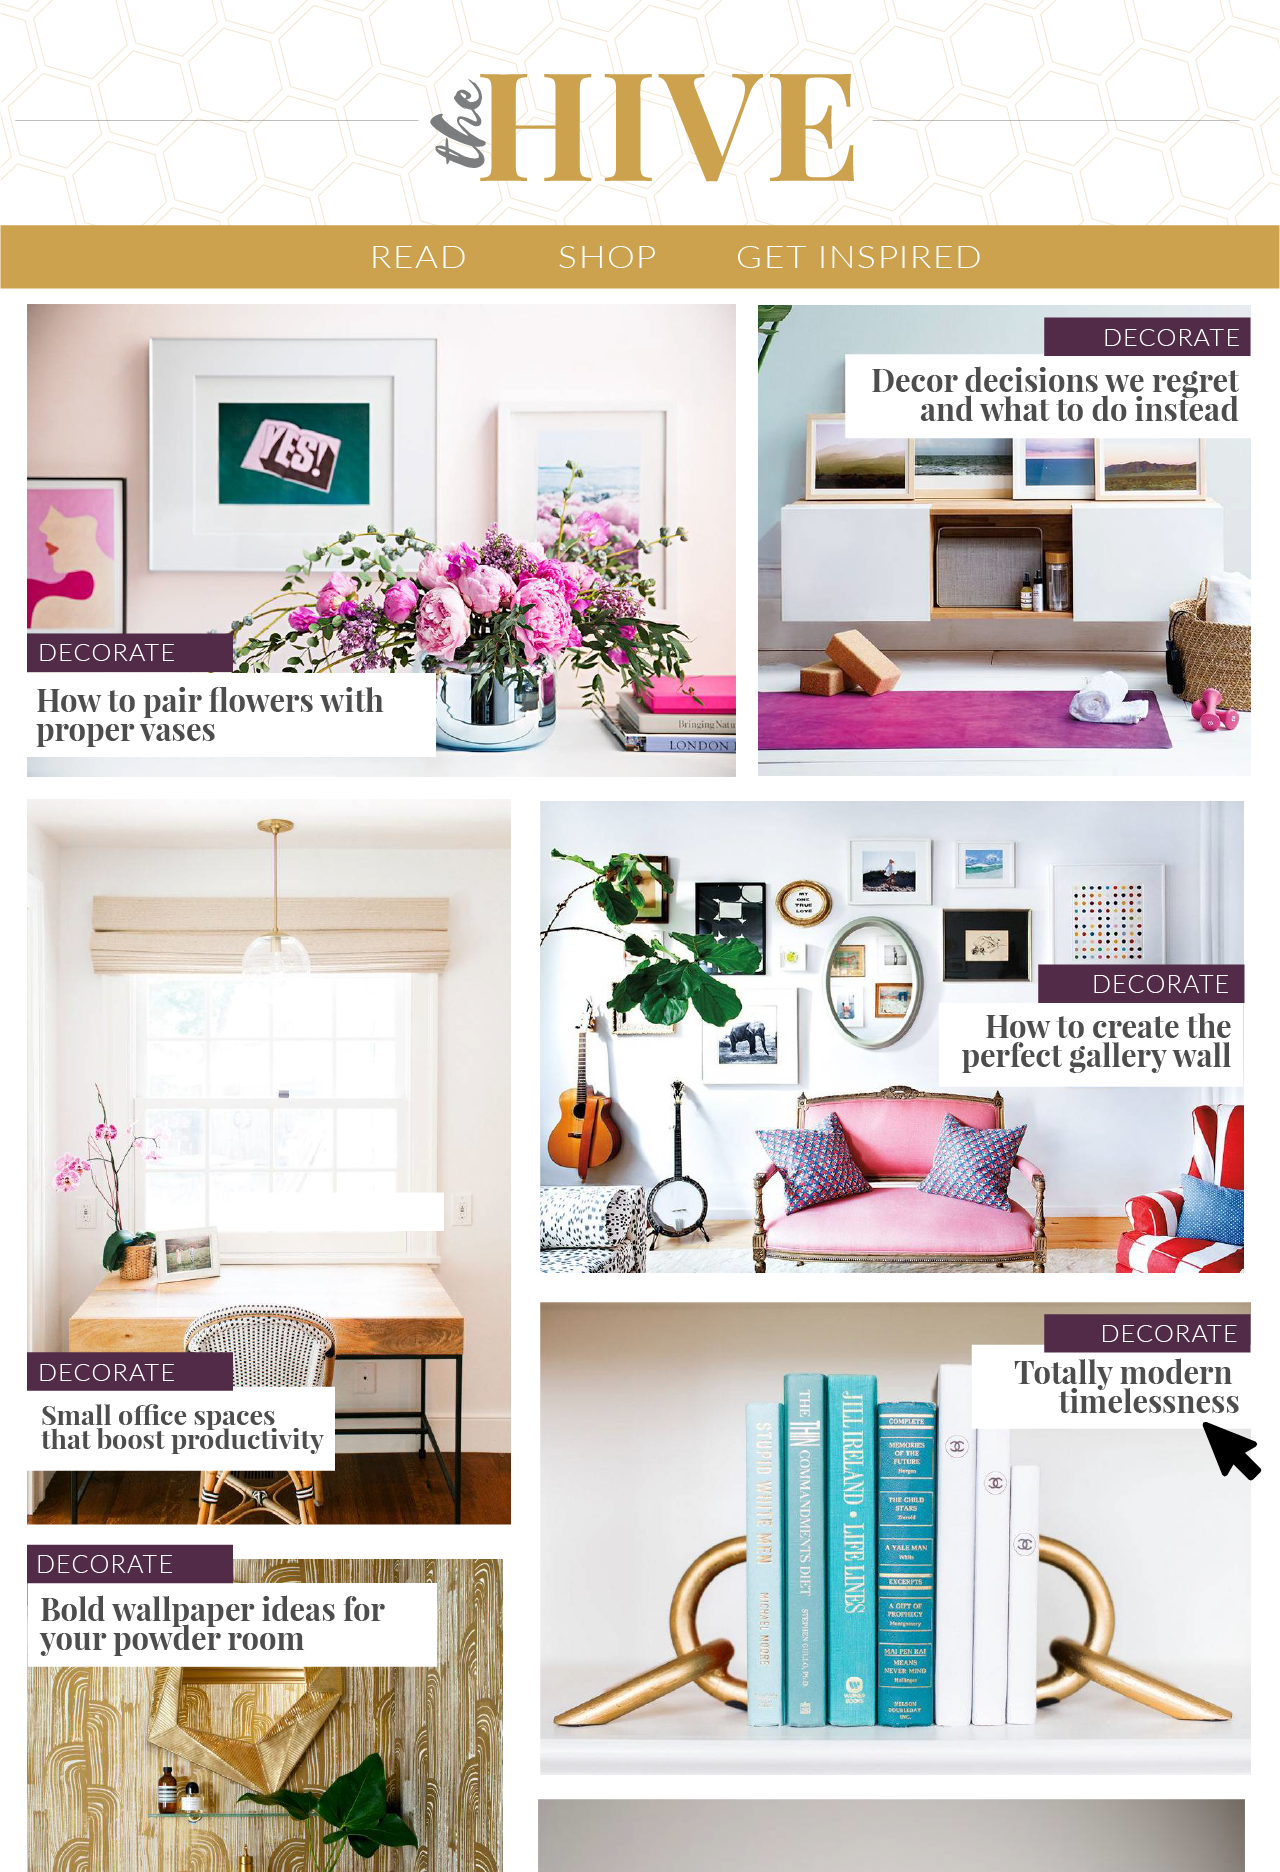 Home page for the website of a fictional interior design publication